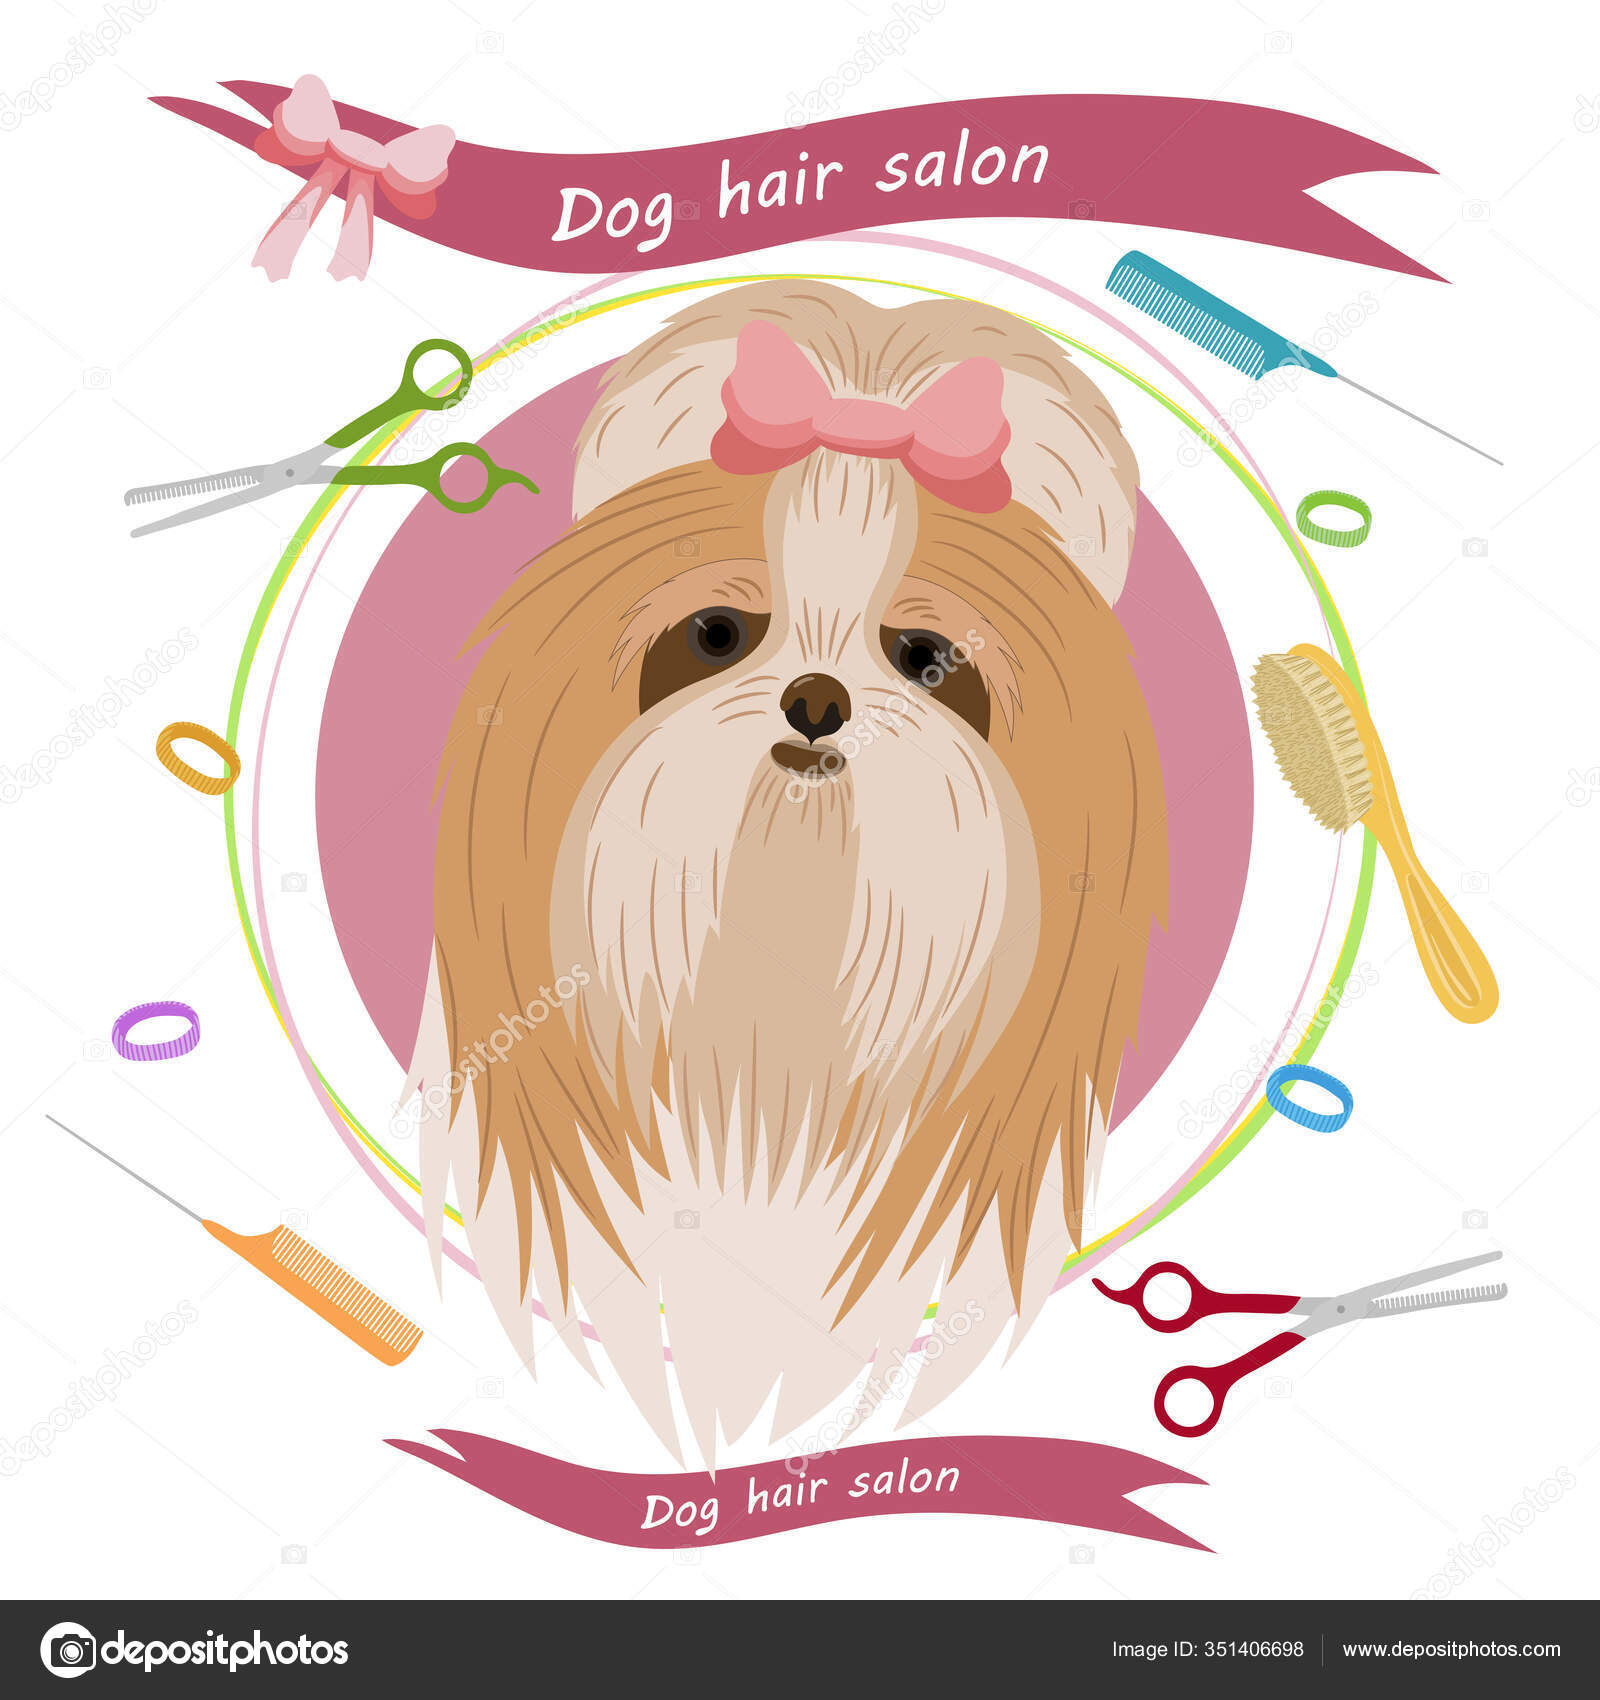 Cute Dog Groomer Salon Pet Grooming Concept Vector Illustration Pet Stock Vector C Anikakarts 351406698